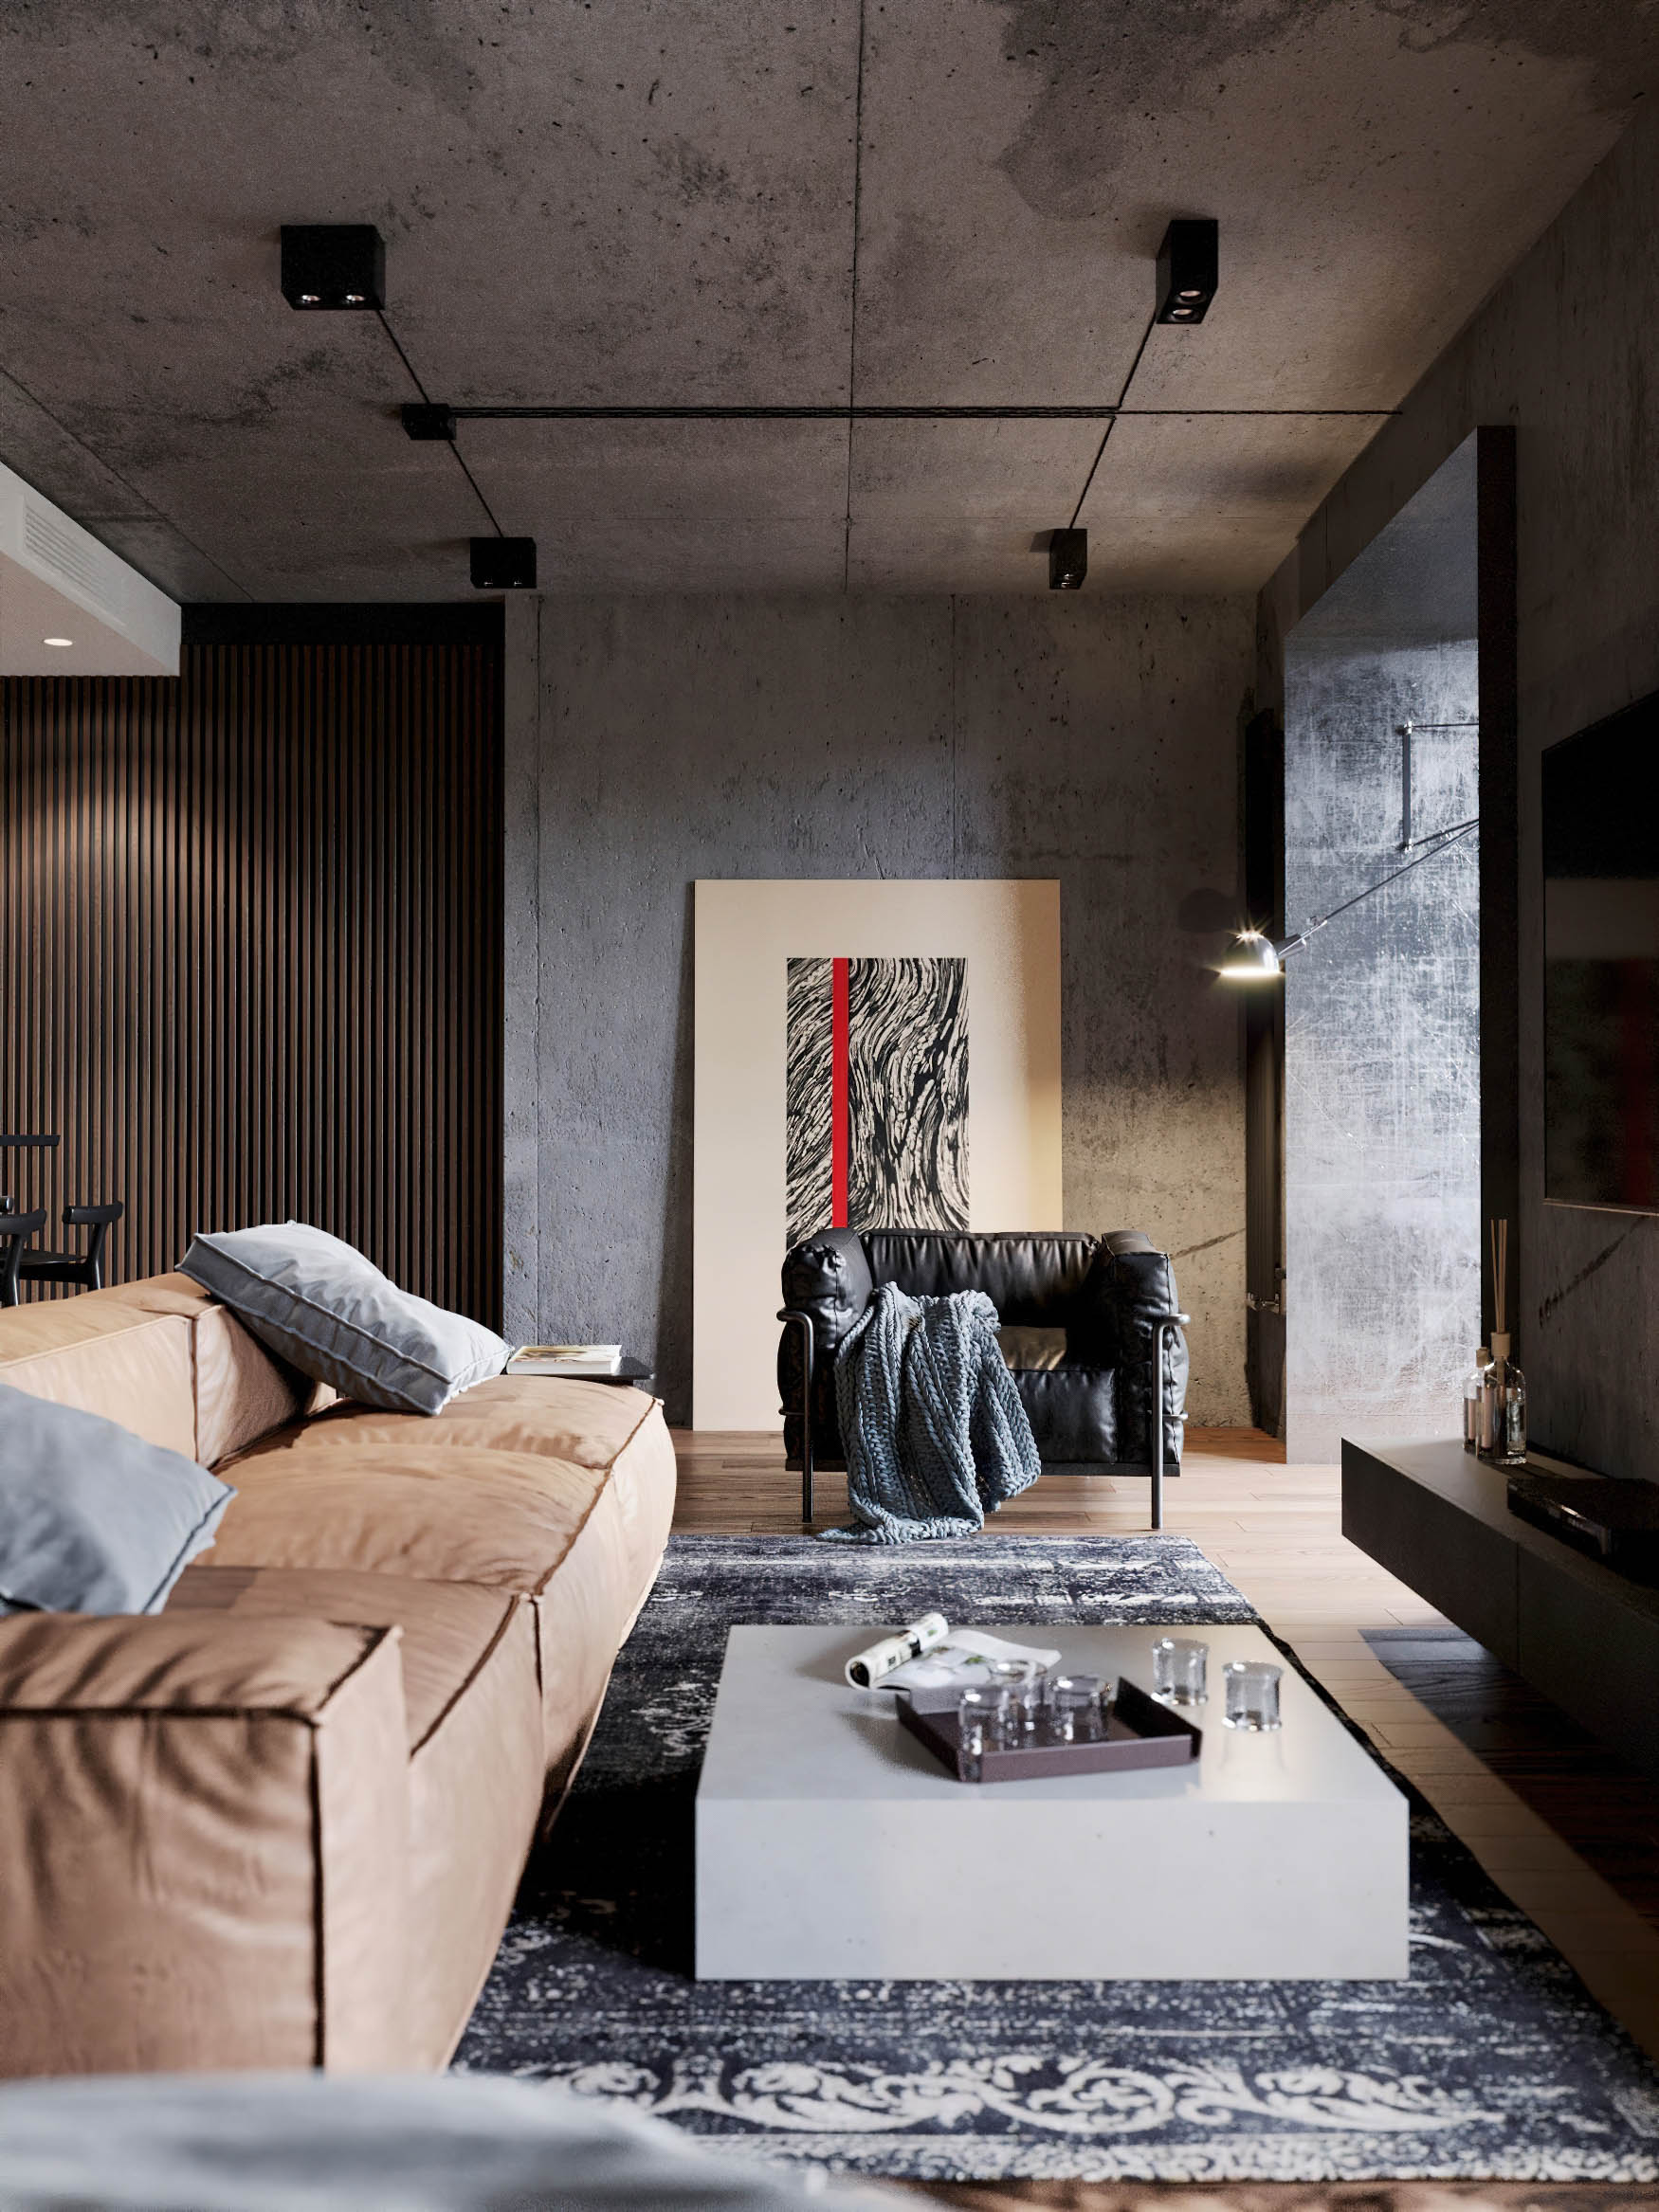 Gold Niva Interior Design Novosibirsk, Russia - Shubochkini Architects